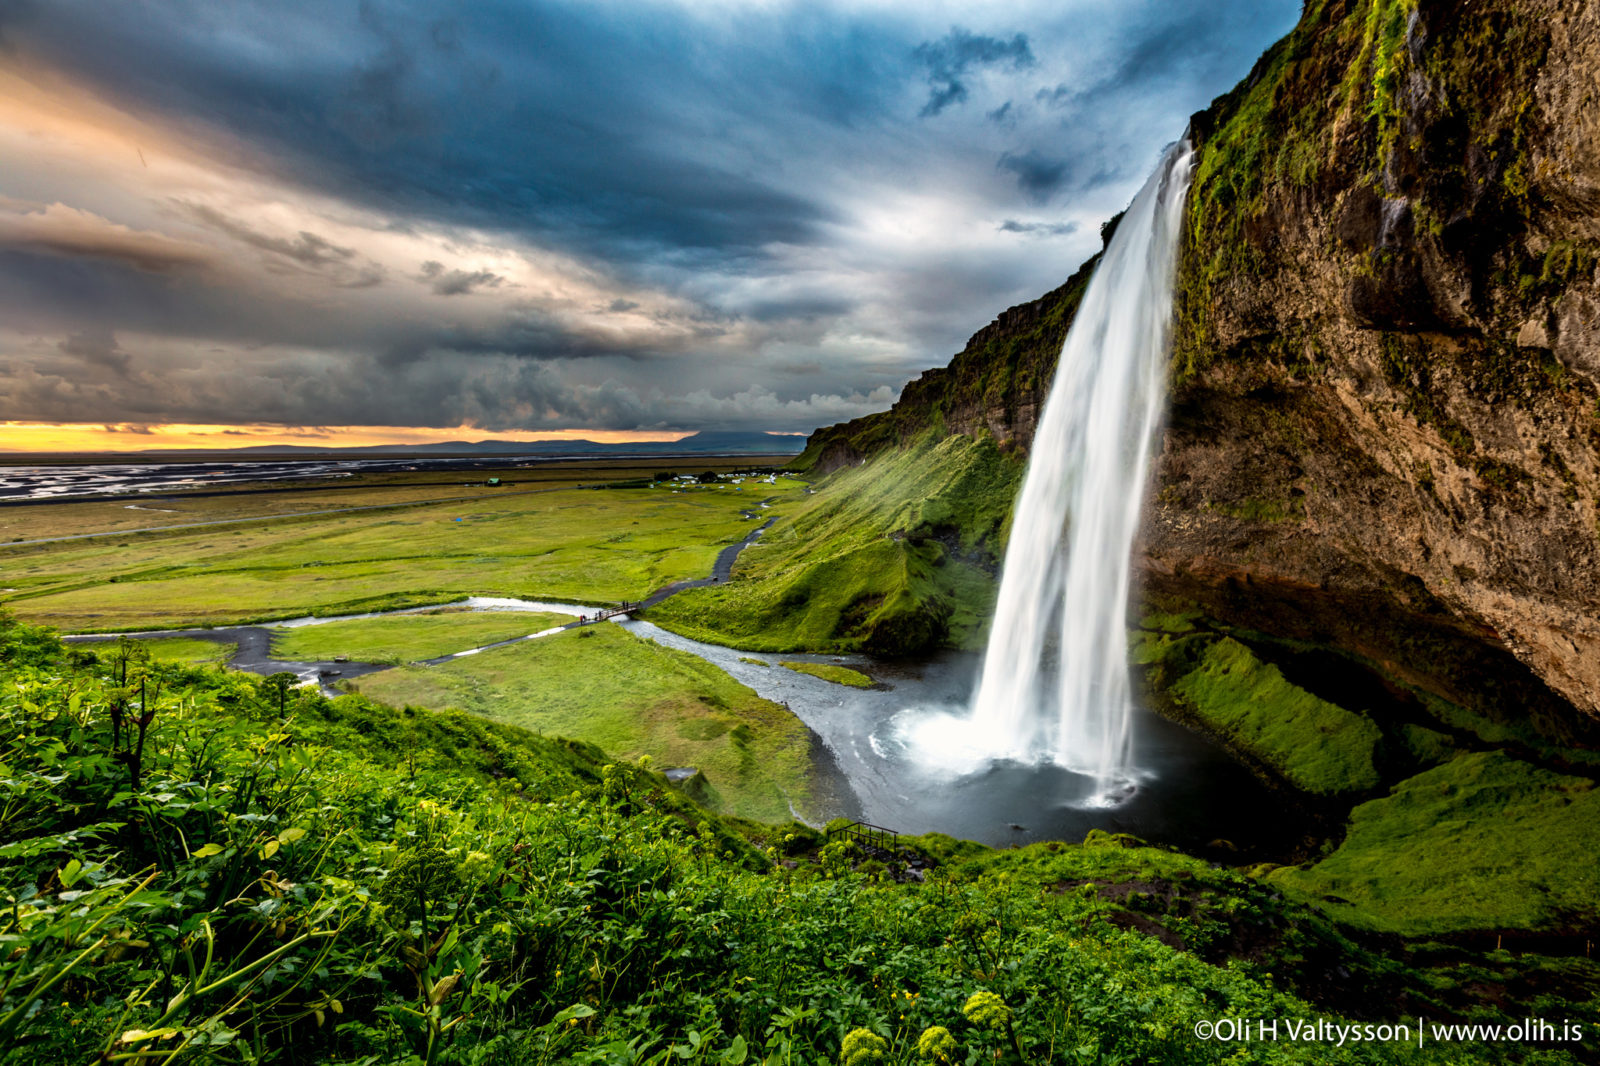 Seljalandsfoss - Outdoor Photographer: www.outdoorphotographer.com/photo-contests/great-outdoors/entry...